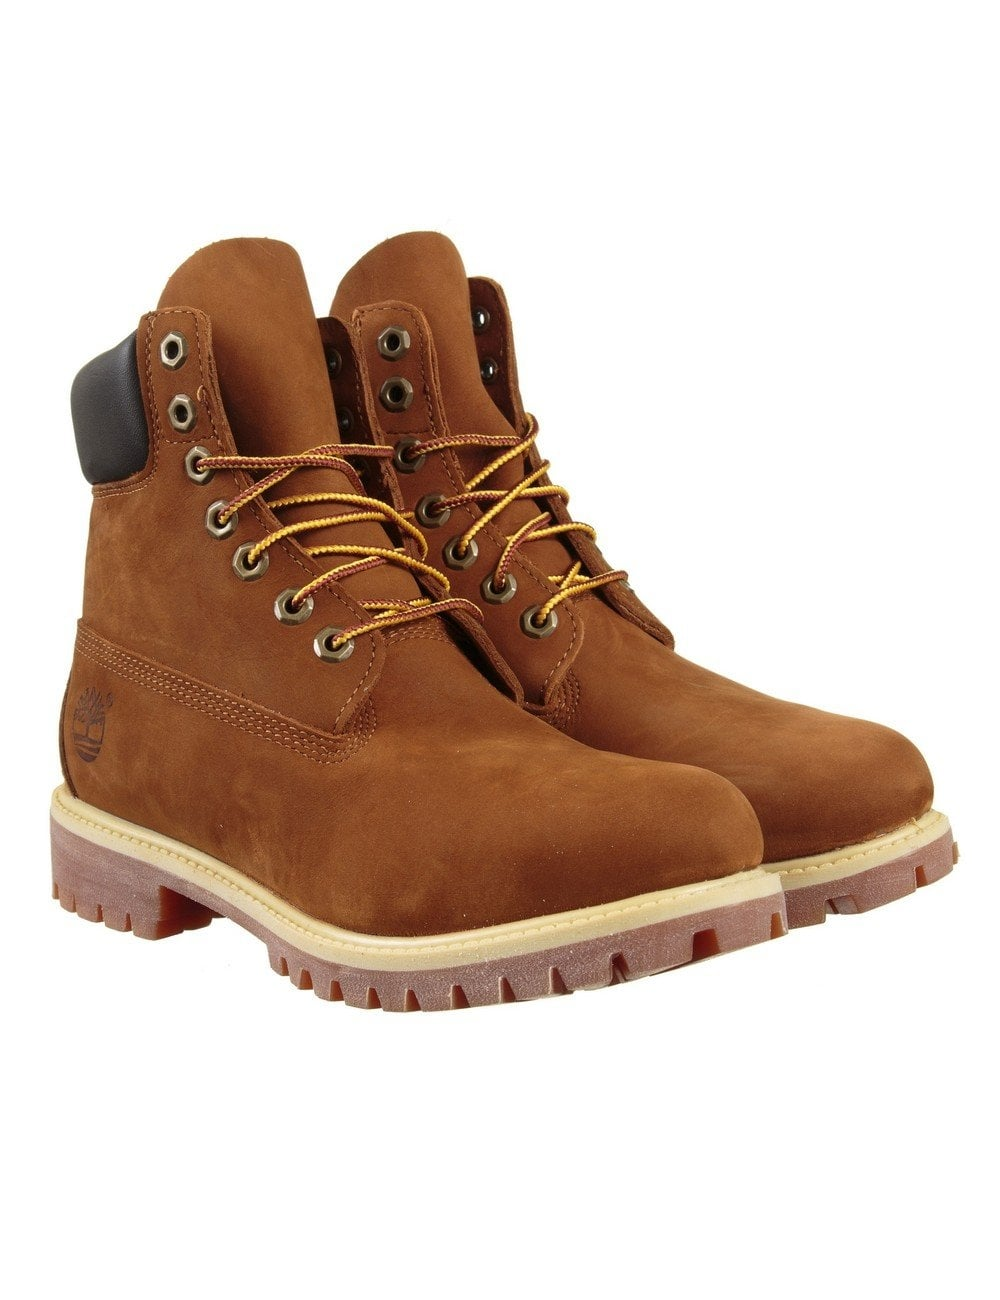 da8d6059a7e8 Timberland 6-inch Premium Waterproof Boot - Rust Orange - Shoes ...